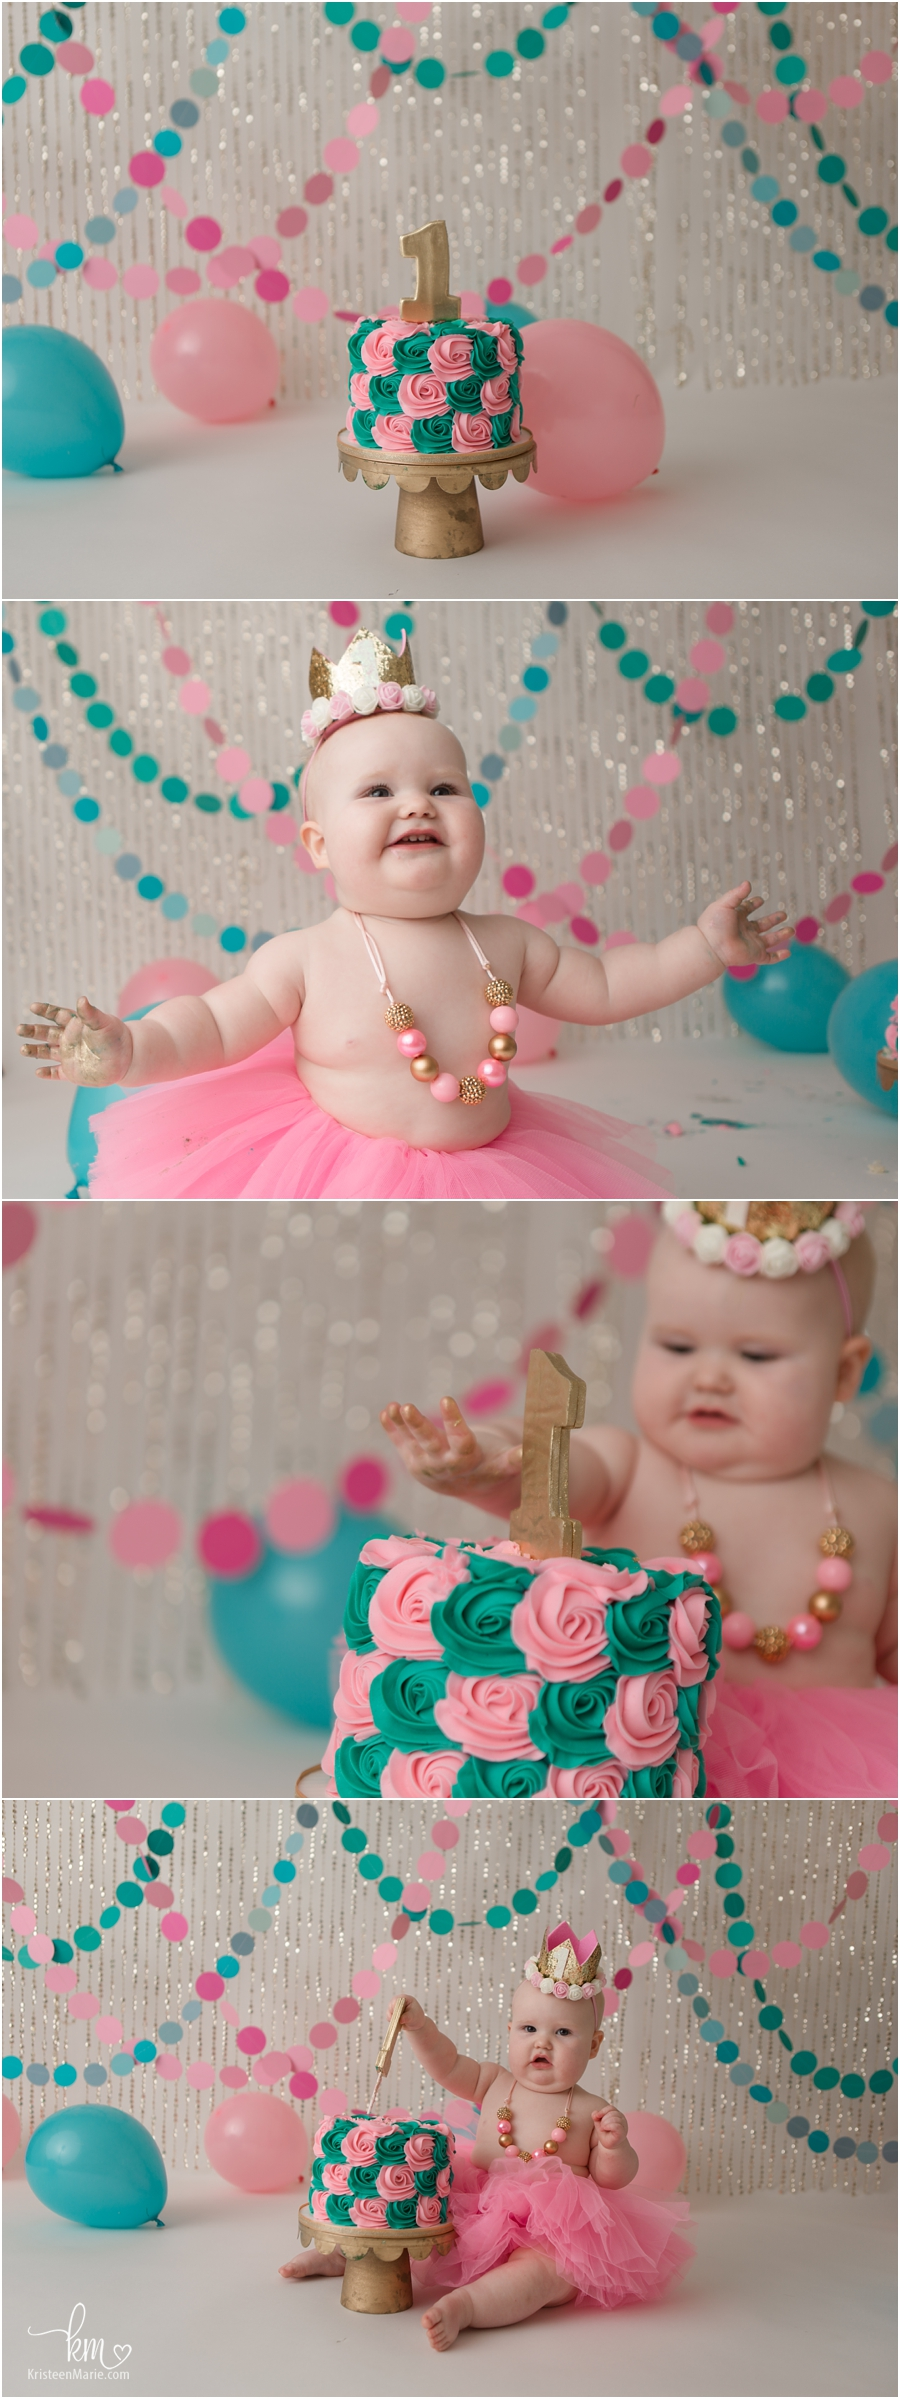 pink and teal cake smash set-up - 1st birthday party theme